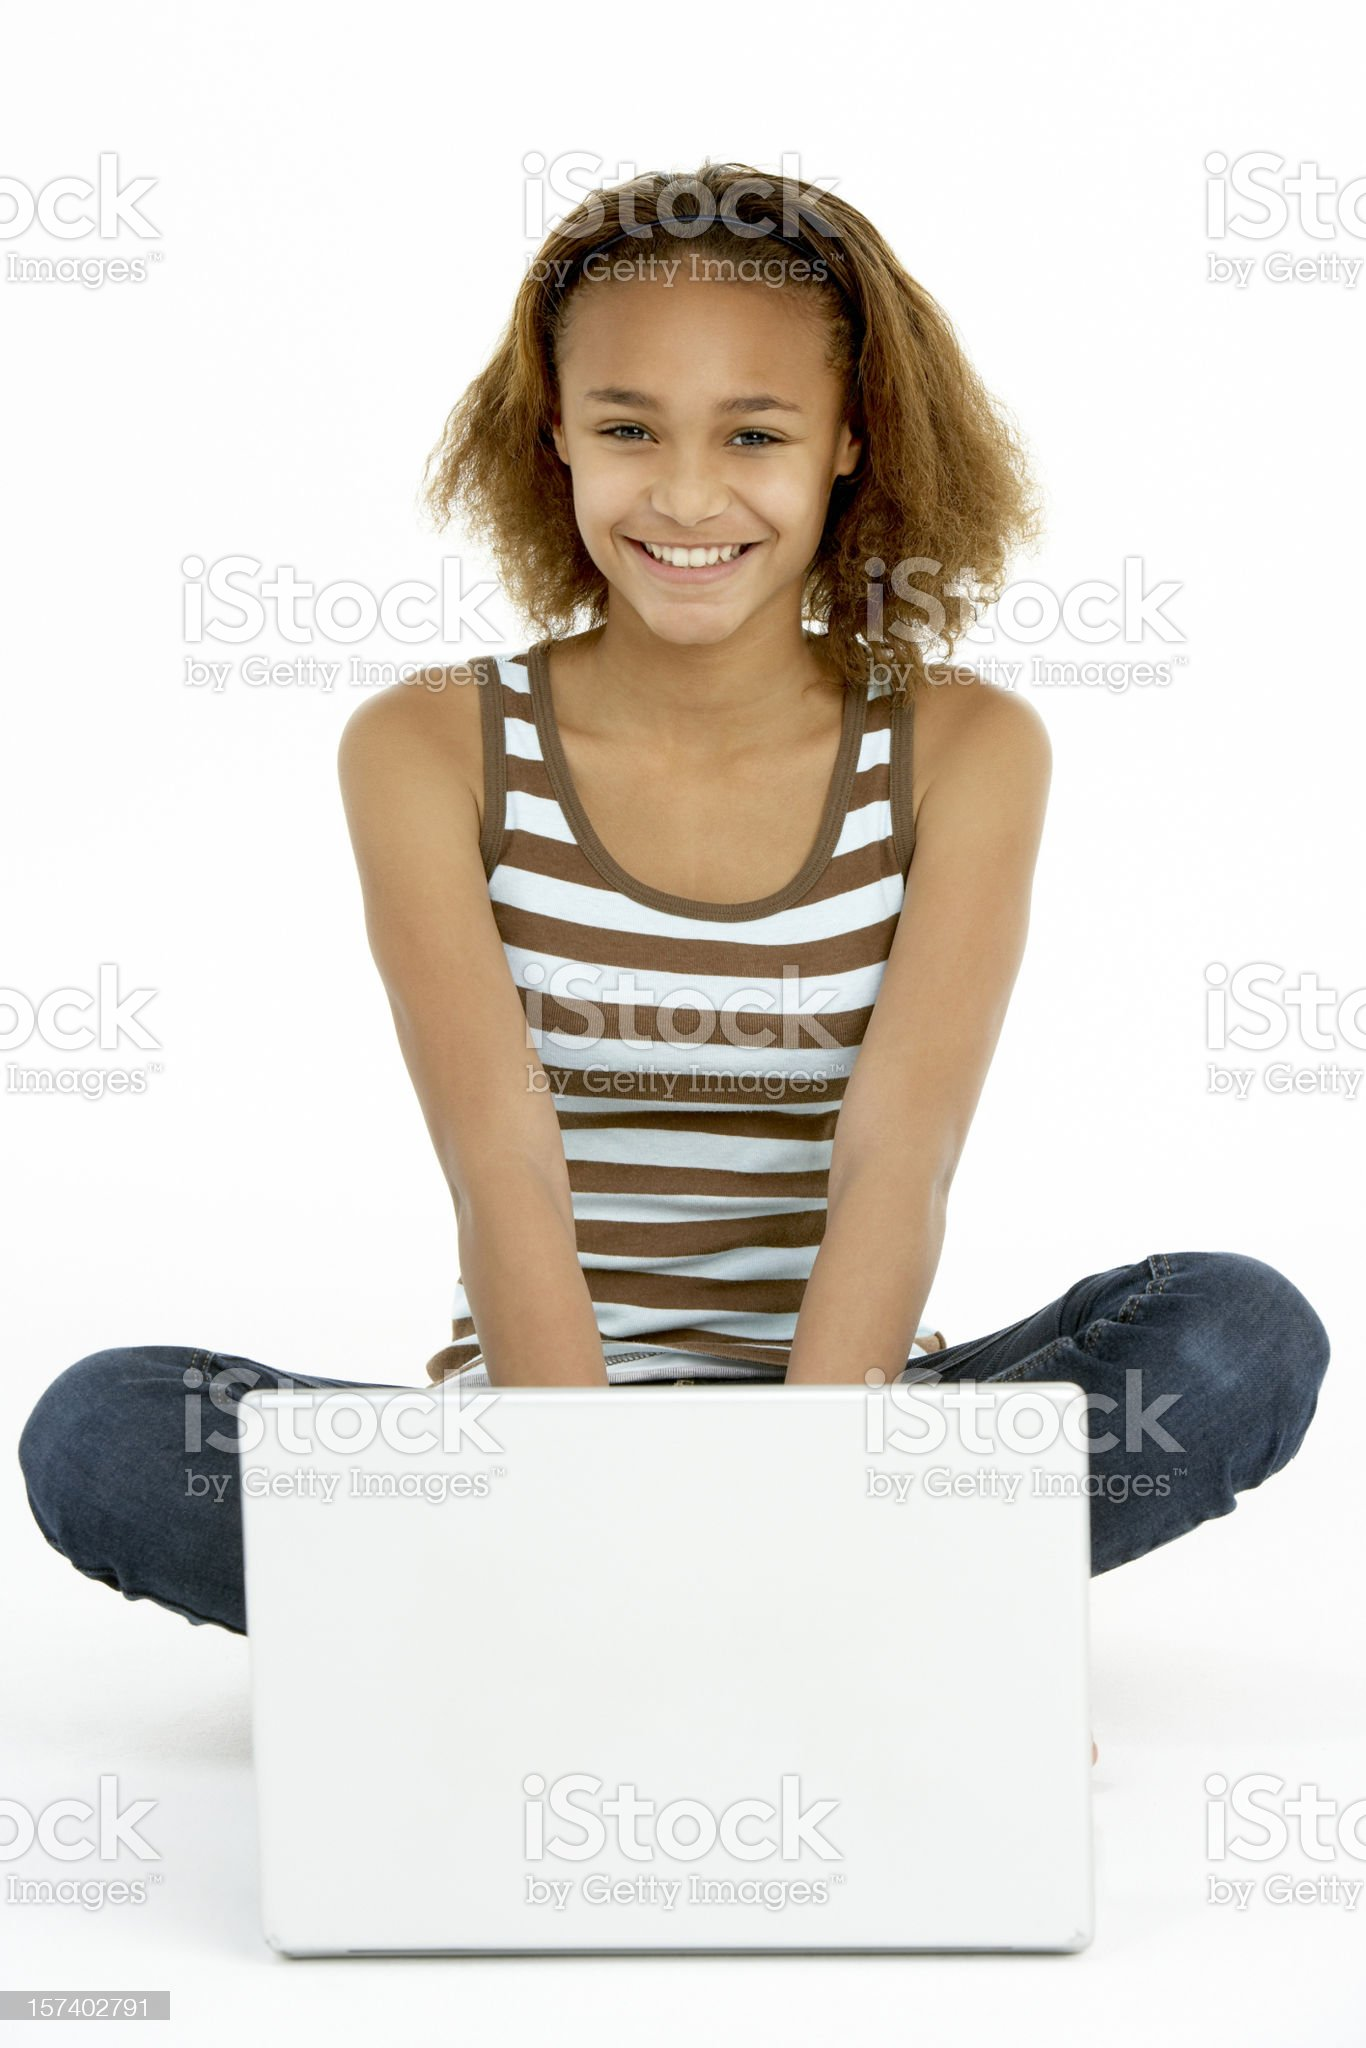 Teenage Girl Using Laptop royalty-free stock photo